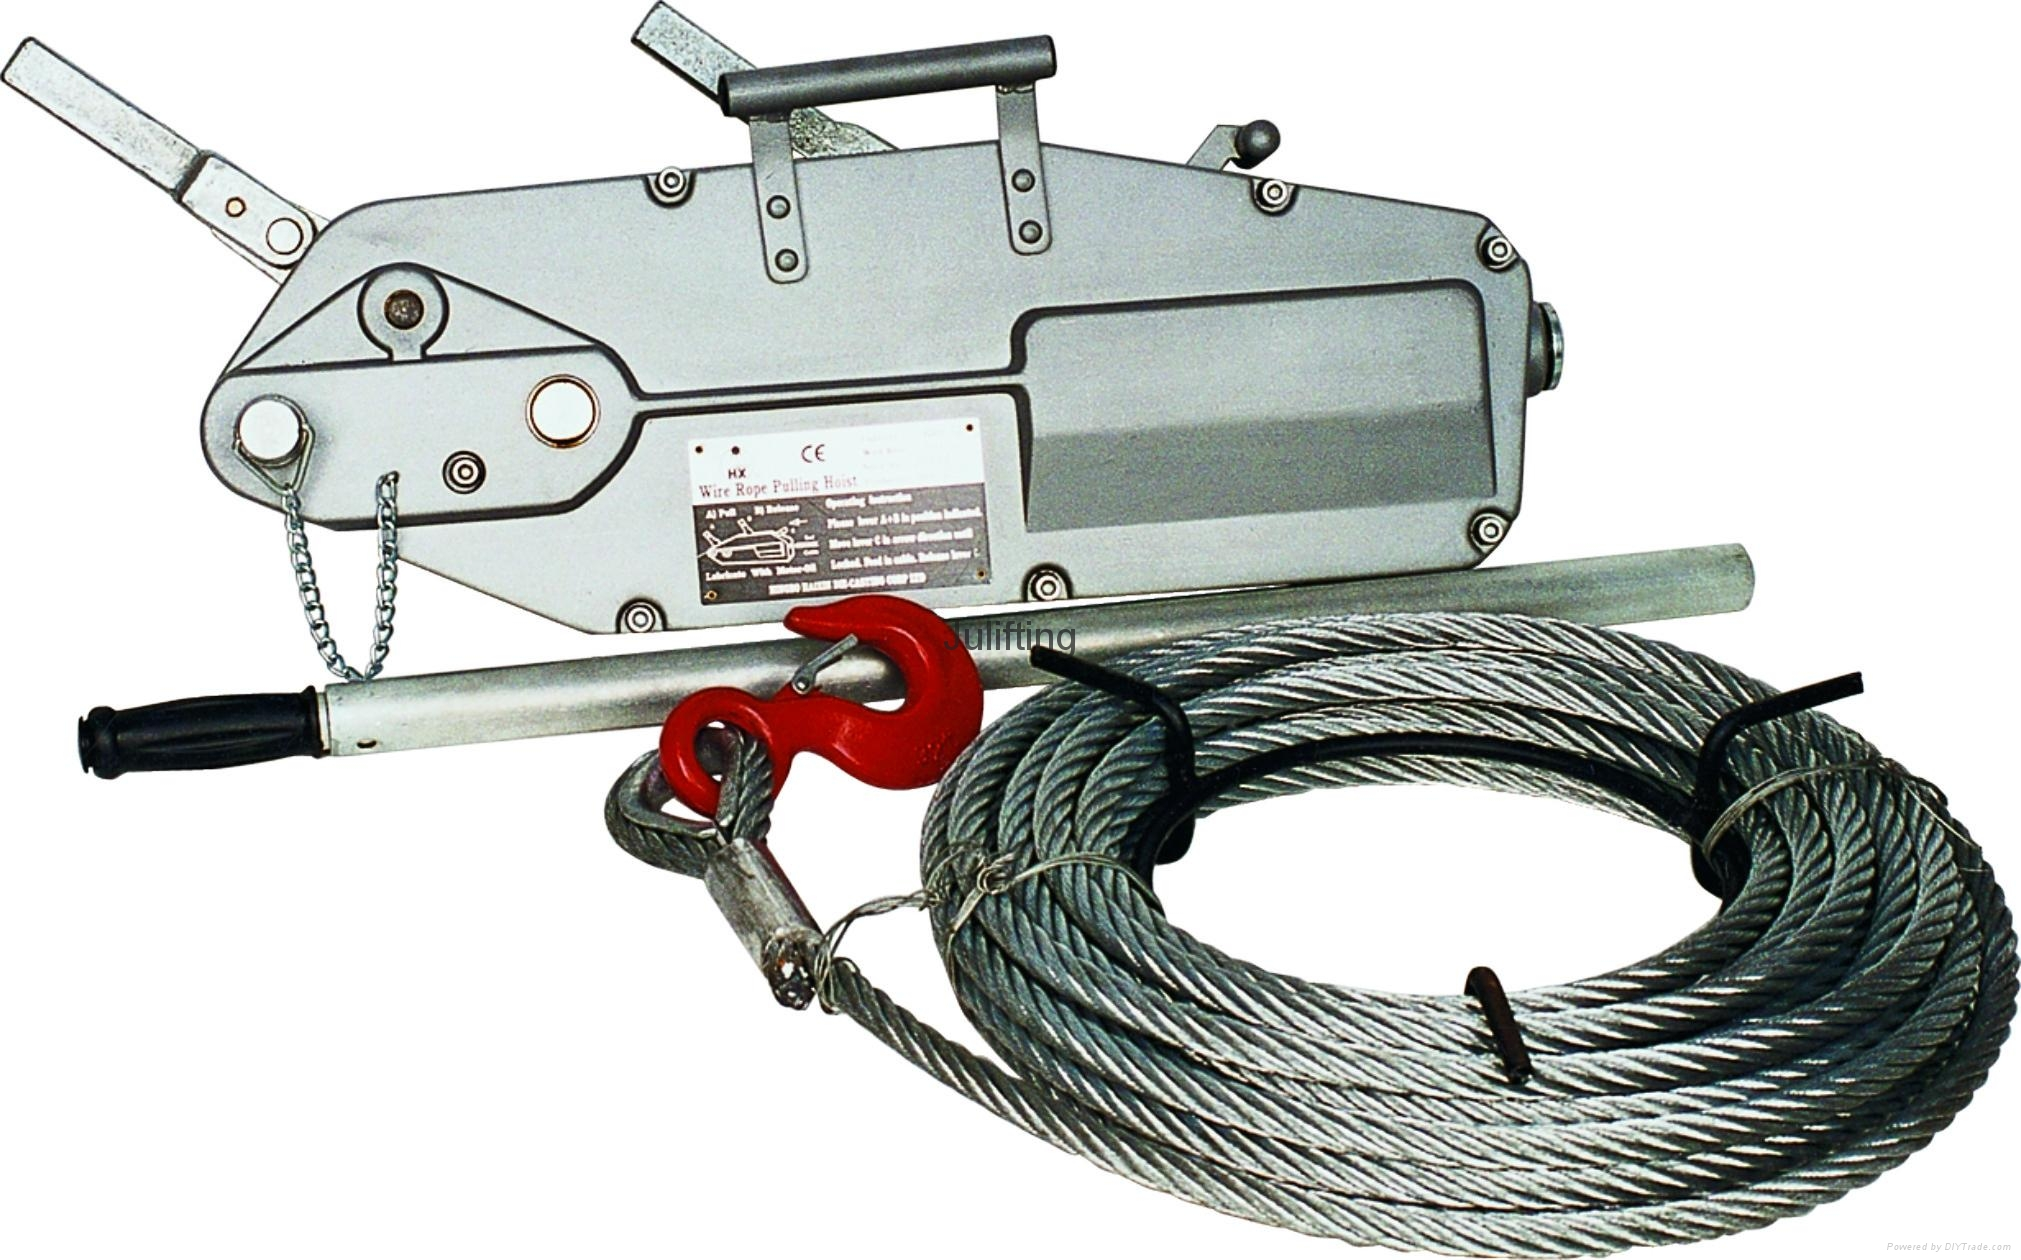 Wire Rope Pulling Hoist with Aluminium Body 0.8t-5.4t - HB - as ...